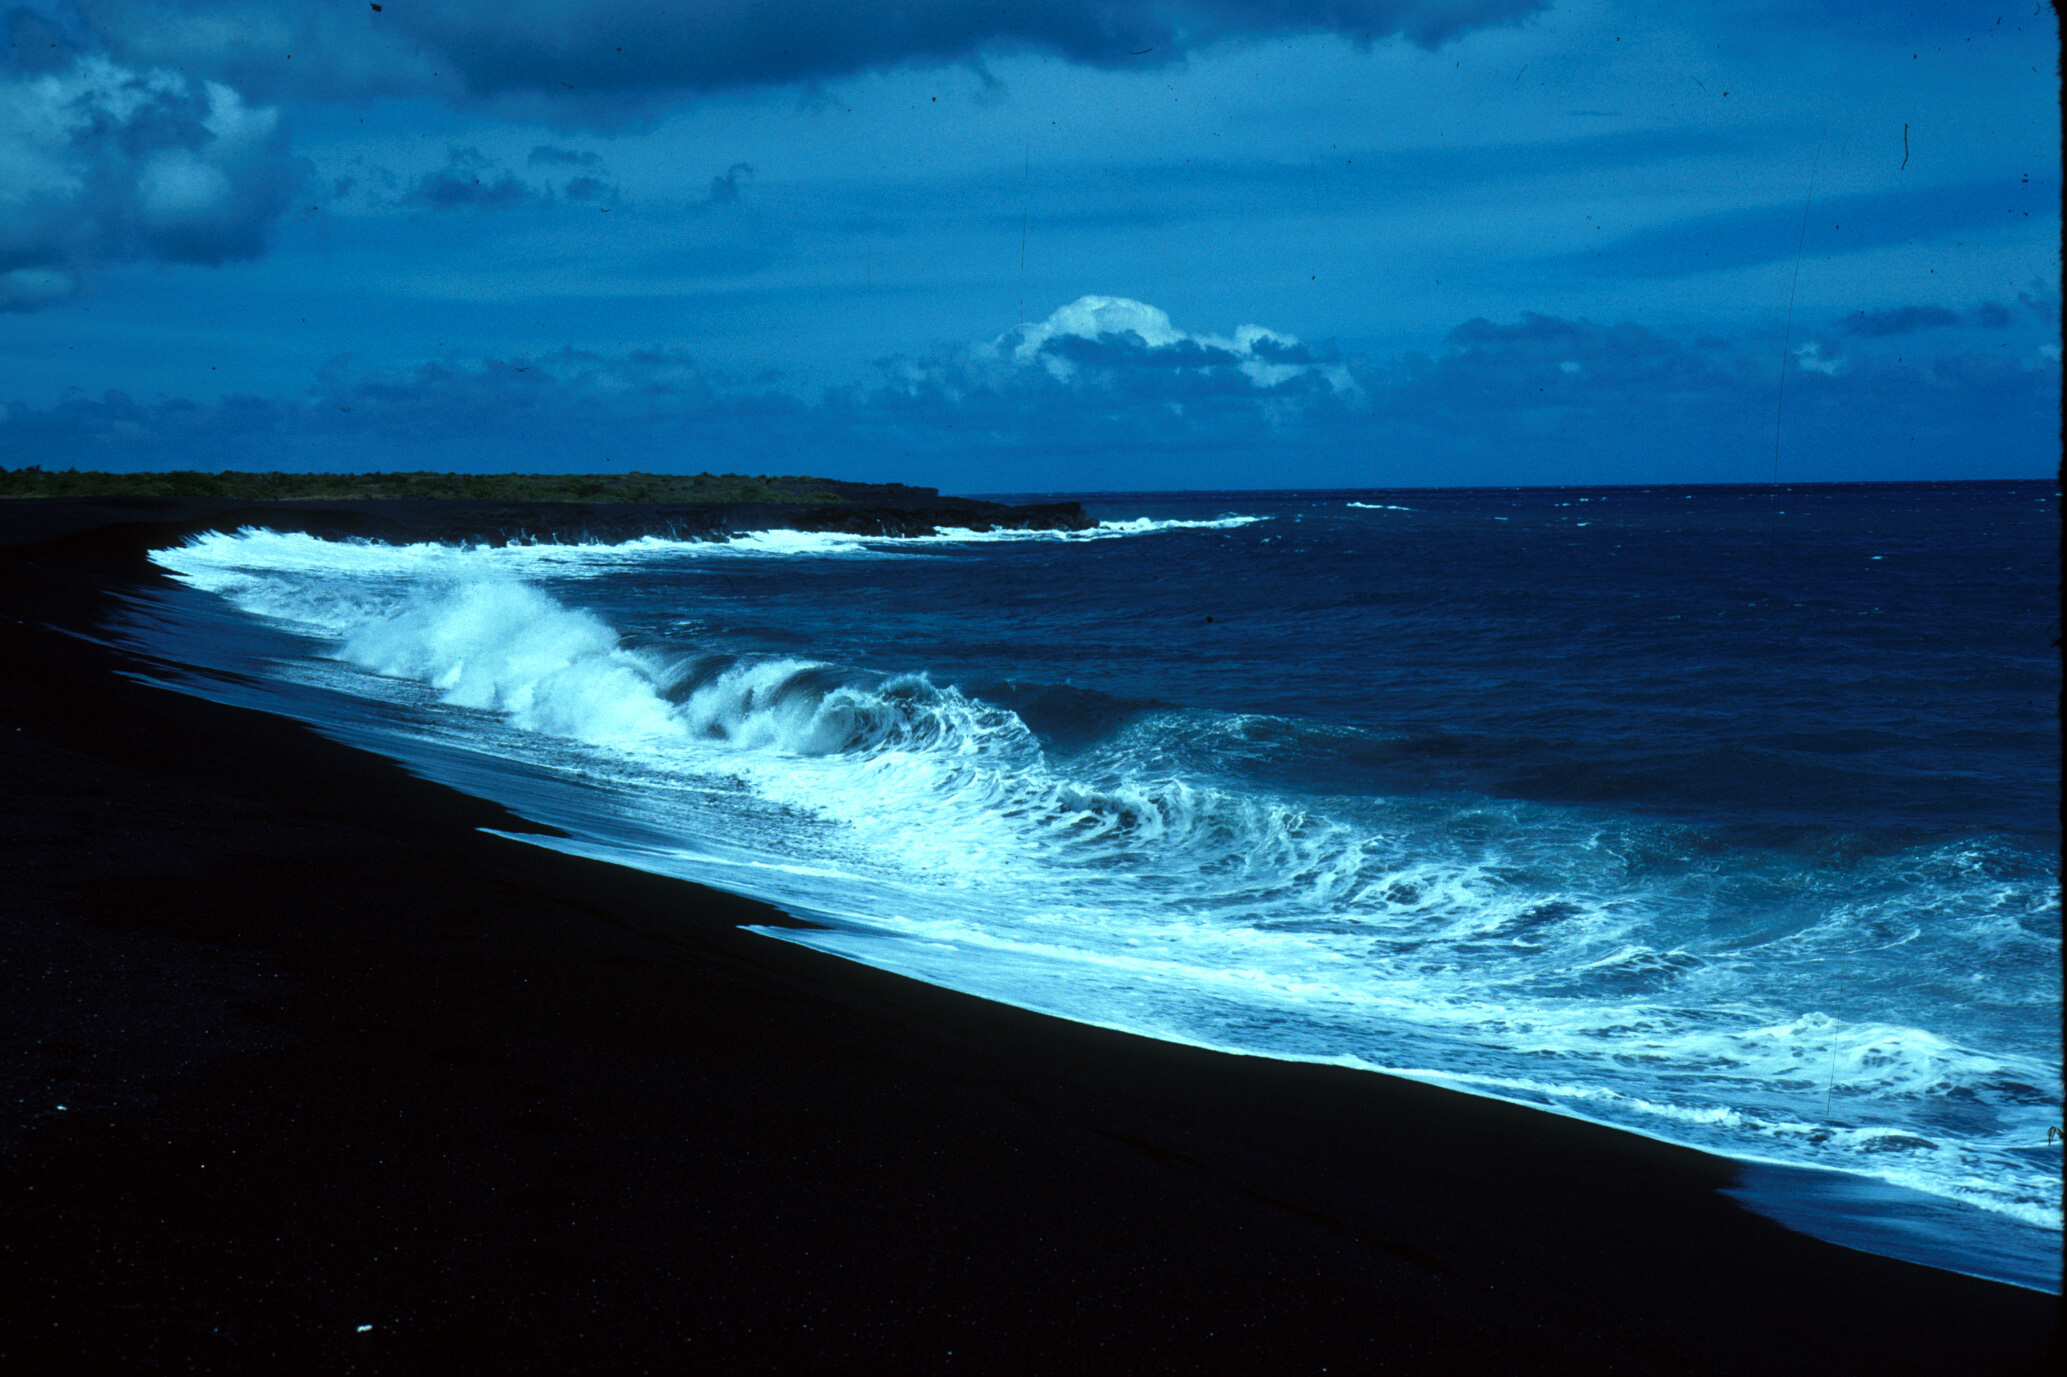 Black Sand Beach Wallpaper Wallpapersafari Wallpapers Images Pictures 2067x1377